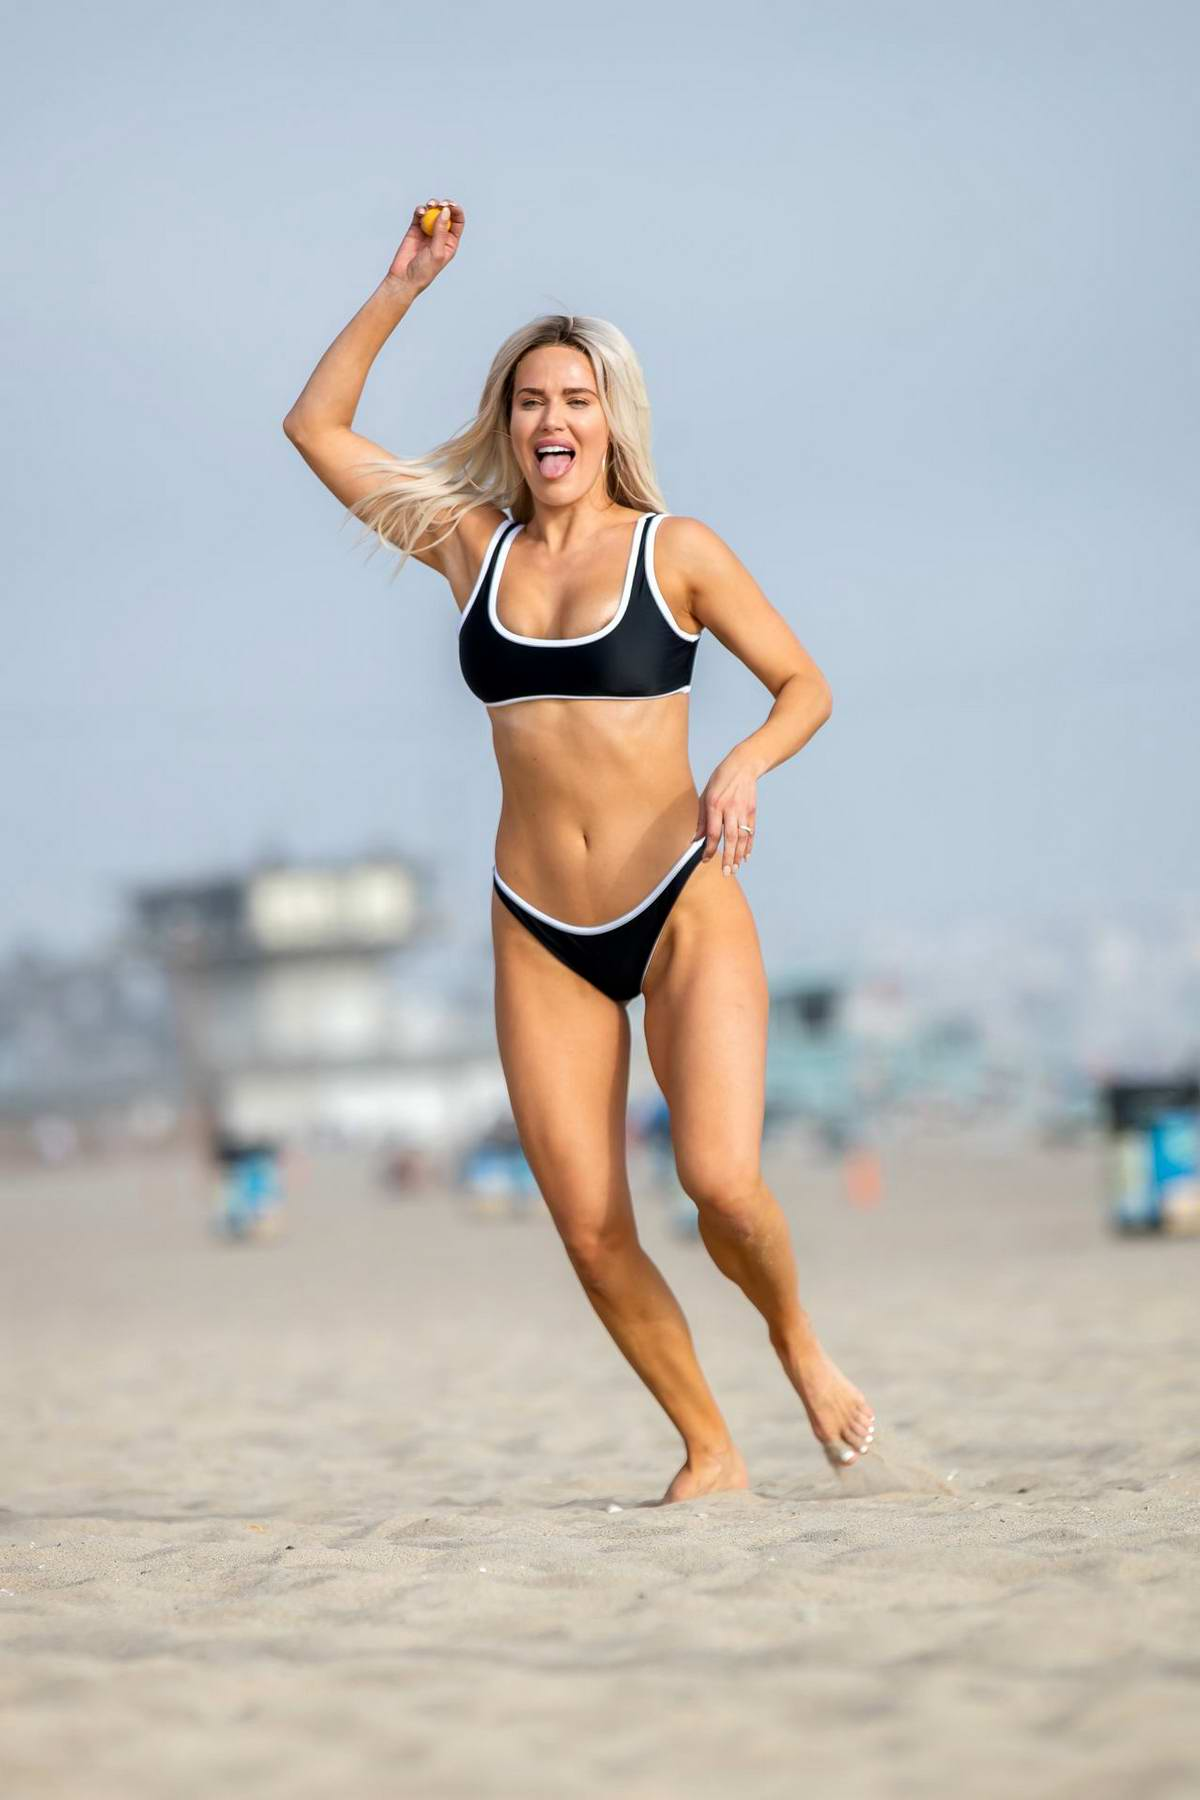 CJ 'Lana' Perry shows off her beach body in a black bikini while enjoying a day at Venice Beach, California